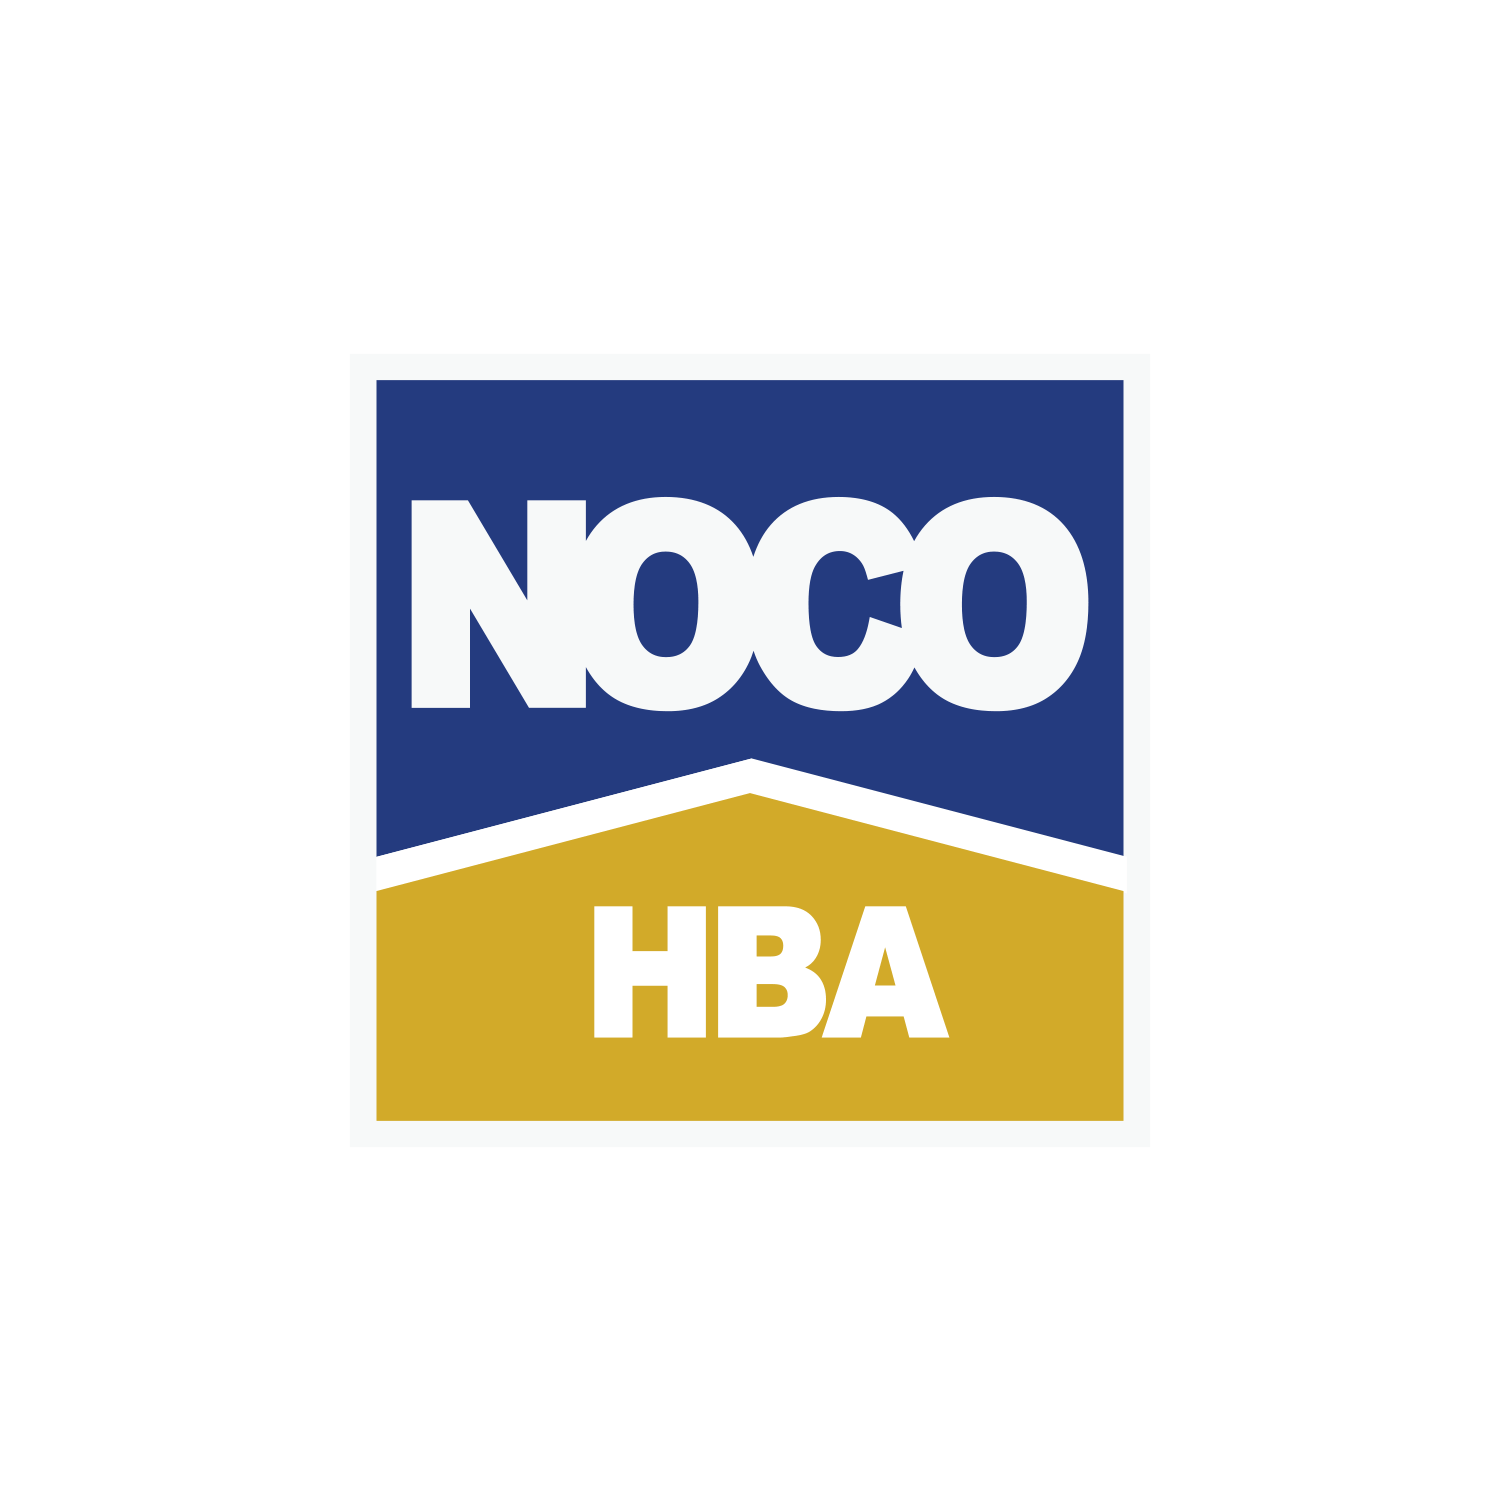 NOCO HBA Logo Design - Loveland, CO Real Estate Association